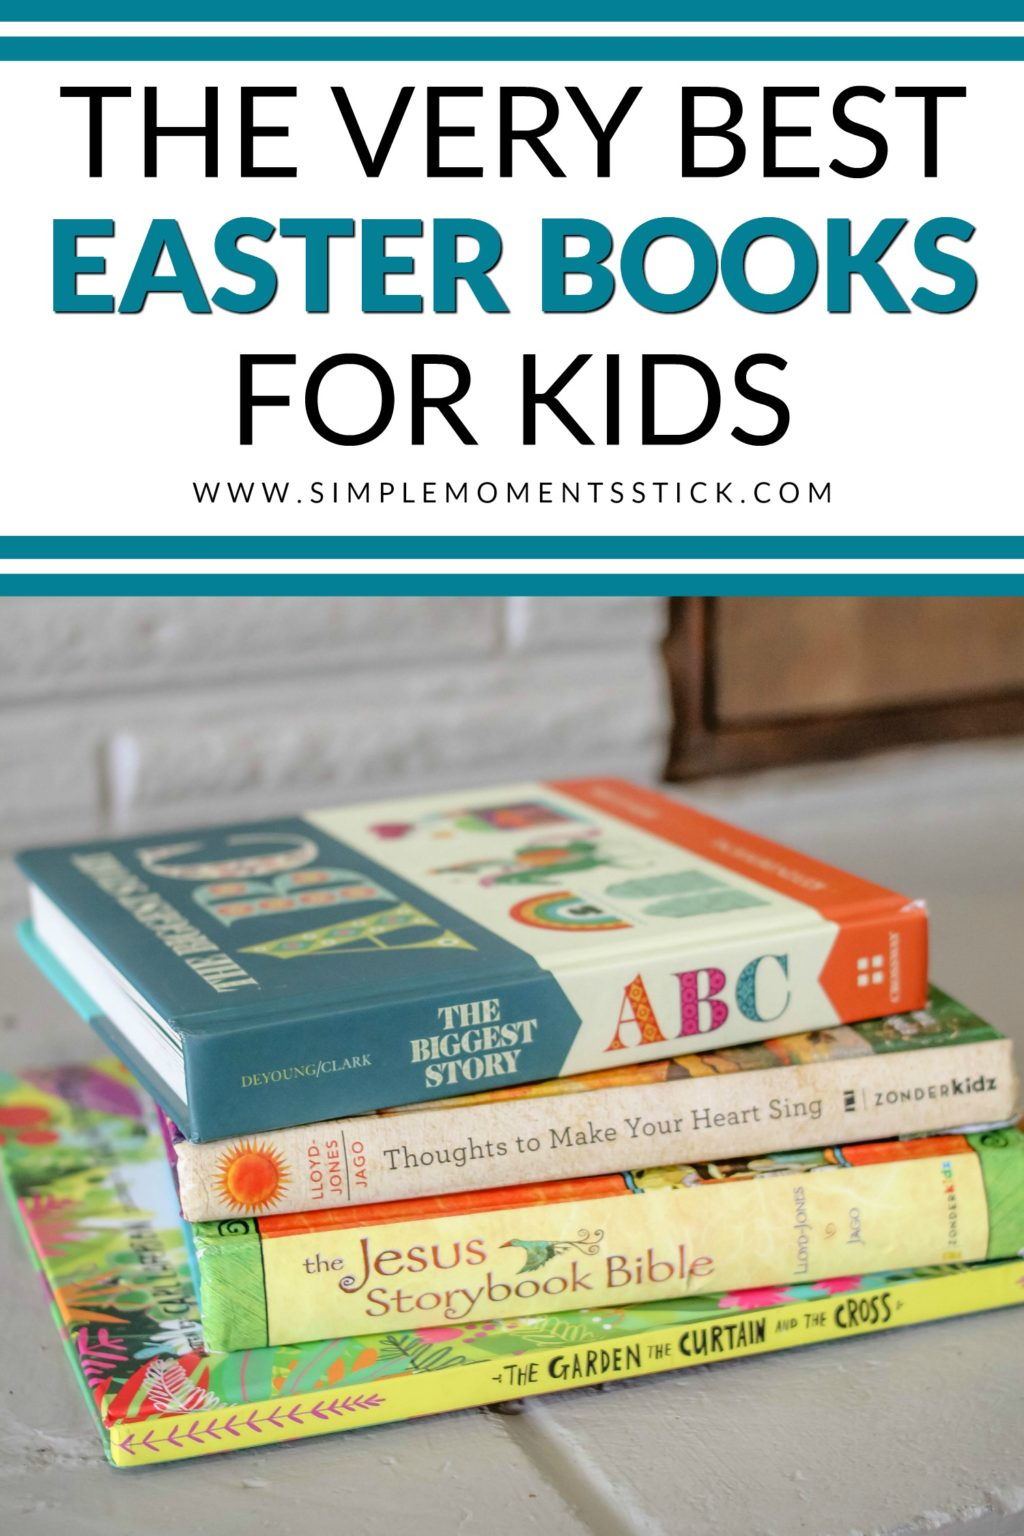 Fill your kids' Easter baskets with books! This post will fill you in on some of the best Easter books for kids that talk about the Resurrection!